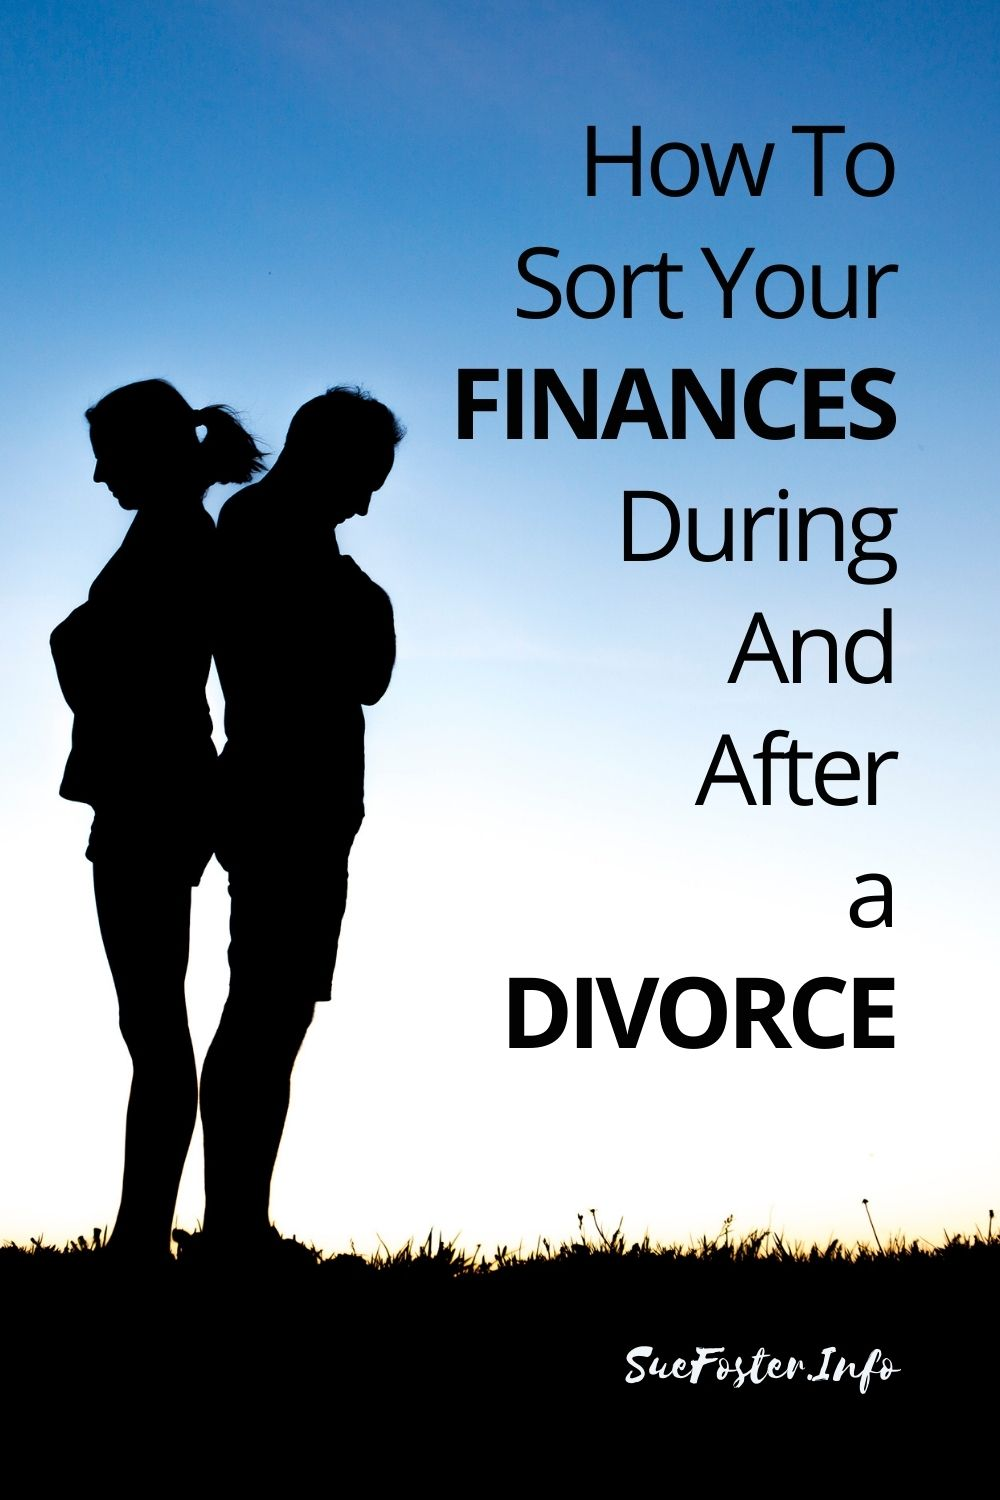 How To Sort Your Finances During And After A Divorce